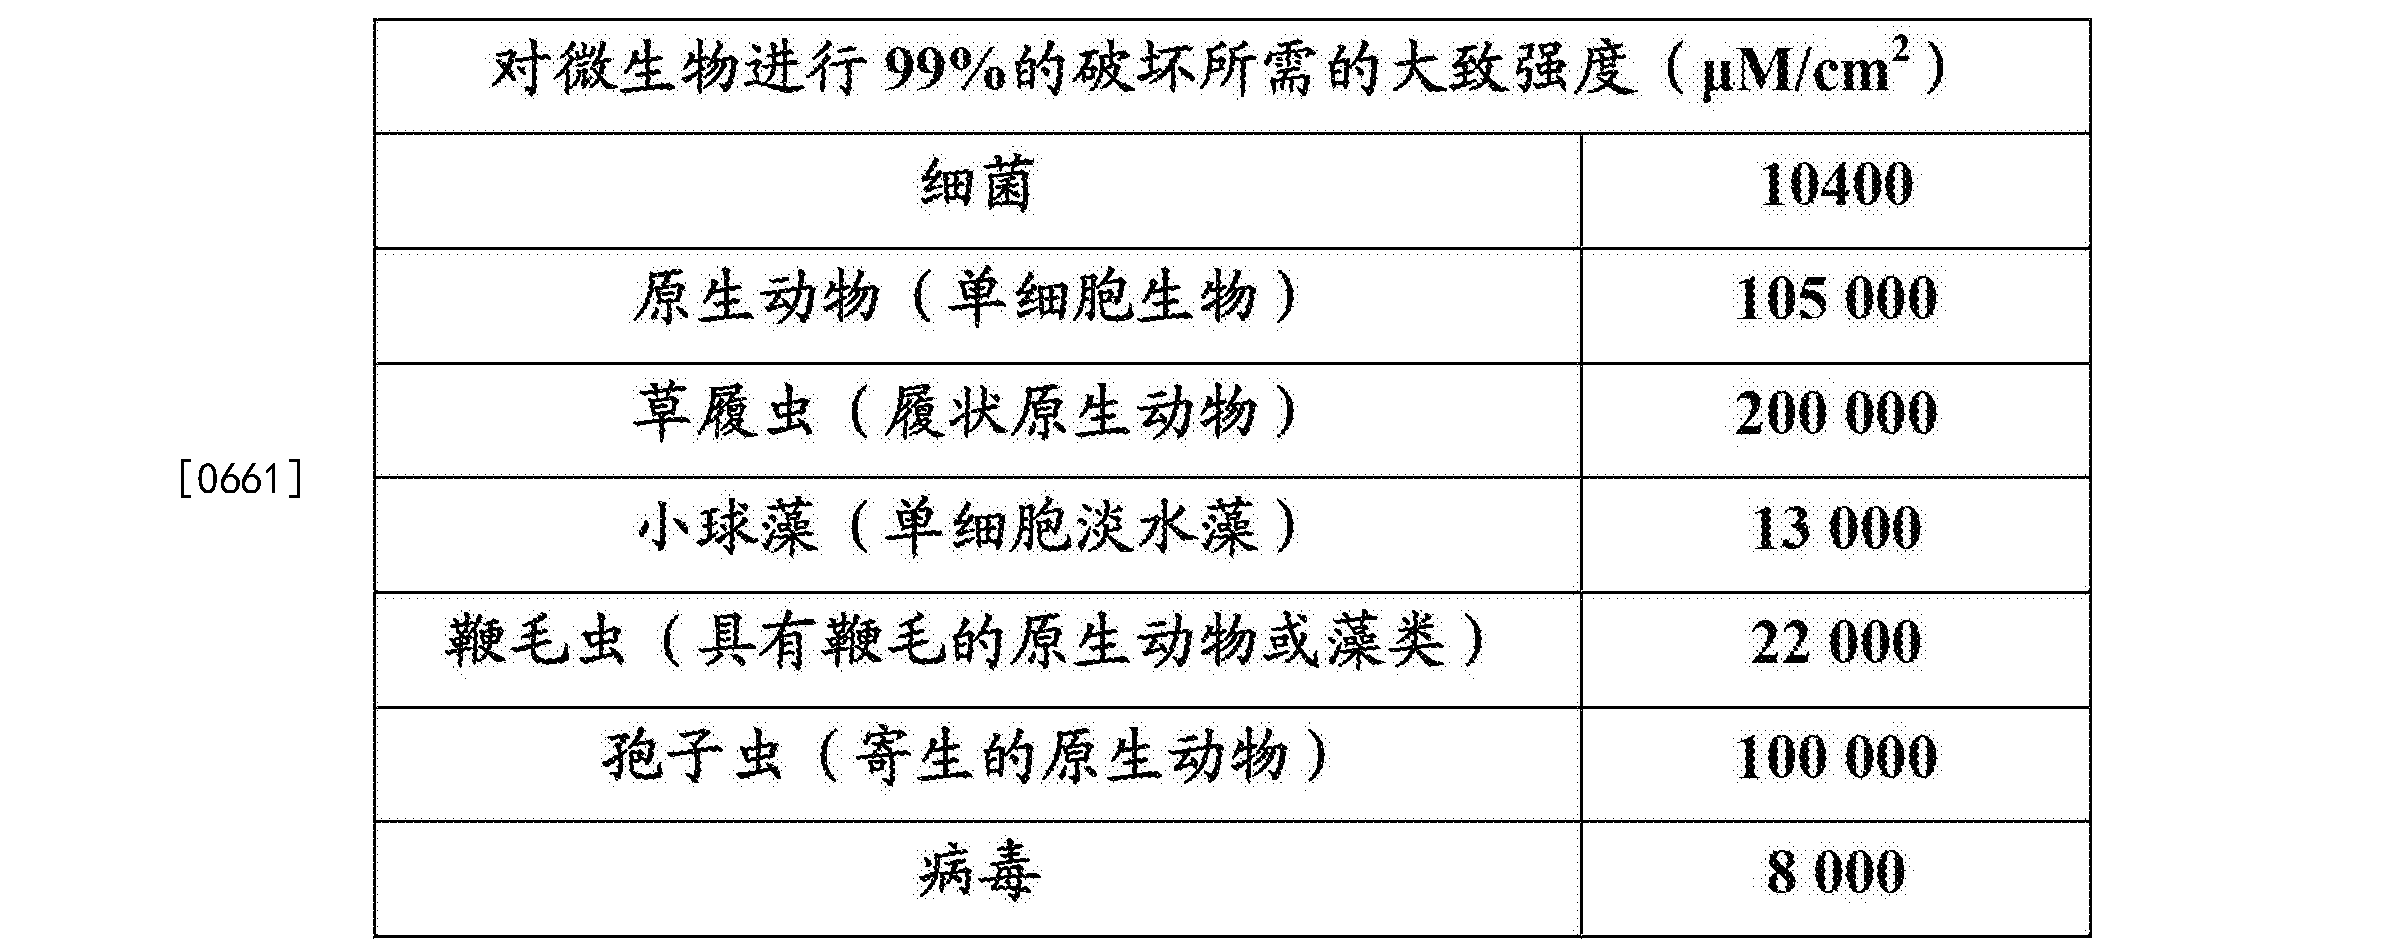 579f00cb2b CN102870235B - Frequency generating system for vertical light emitted from  the energy source include various RF upconversion